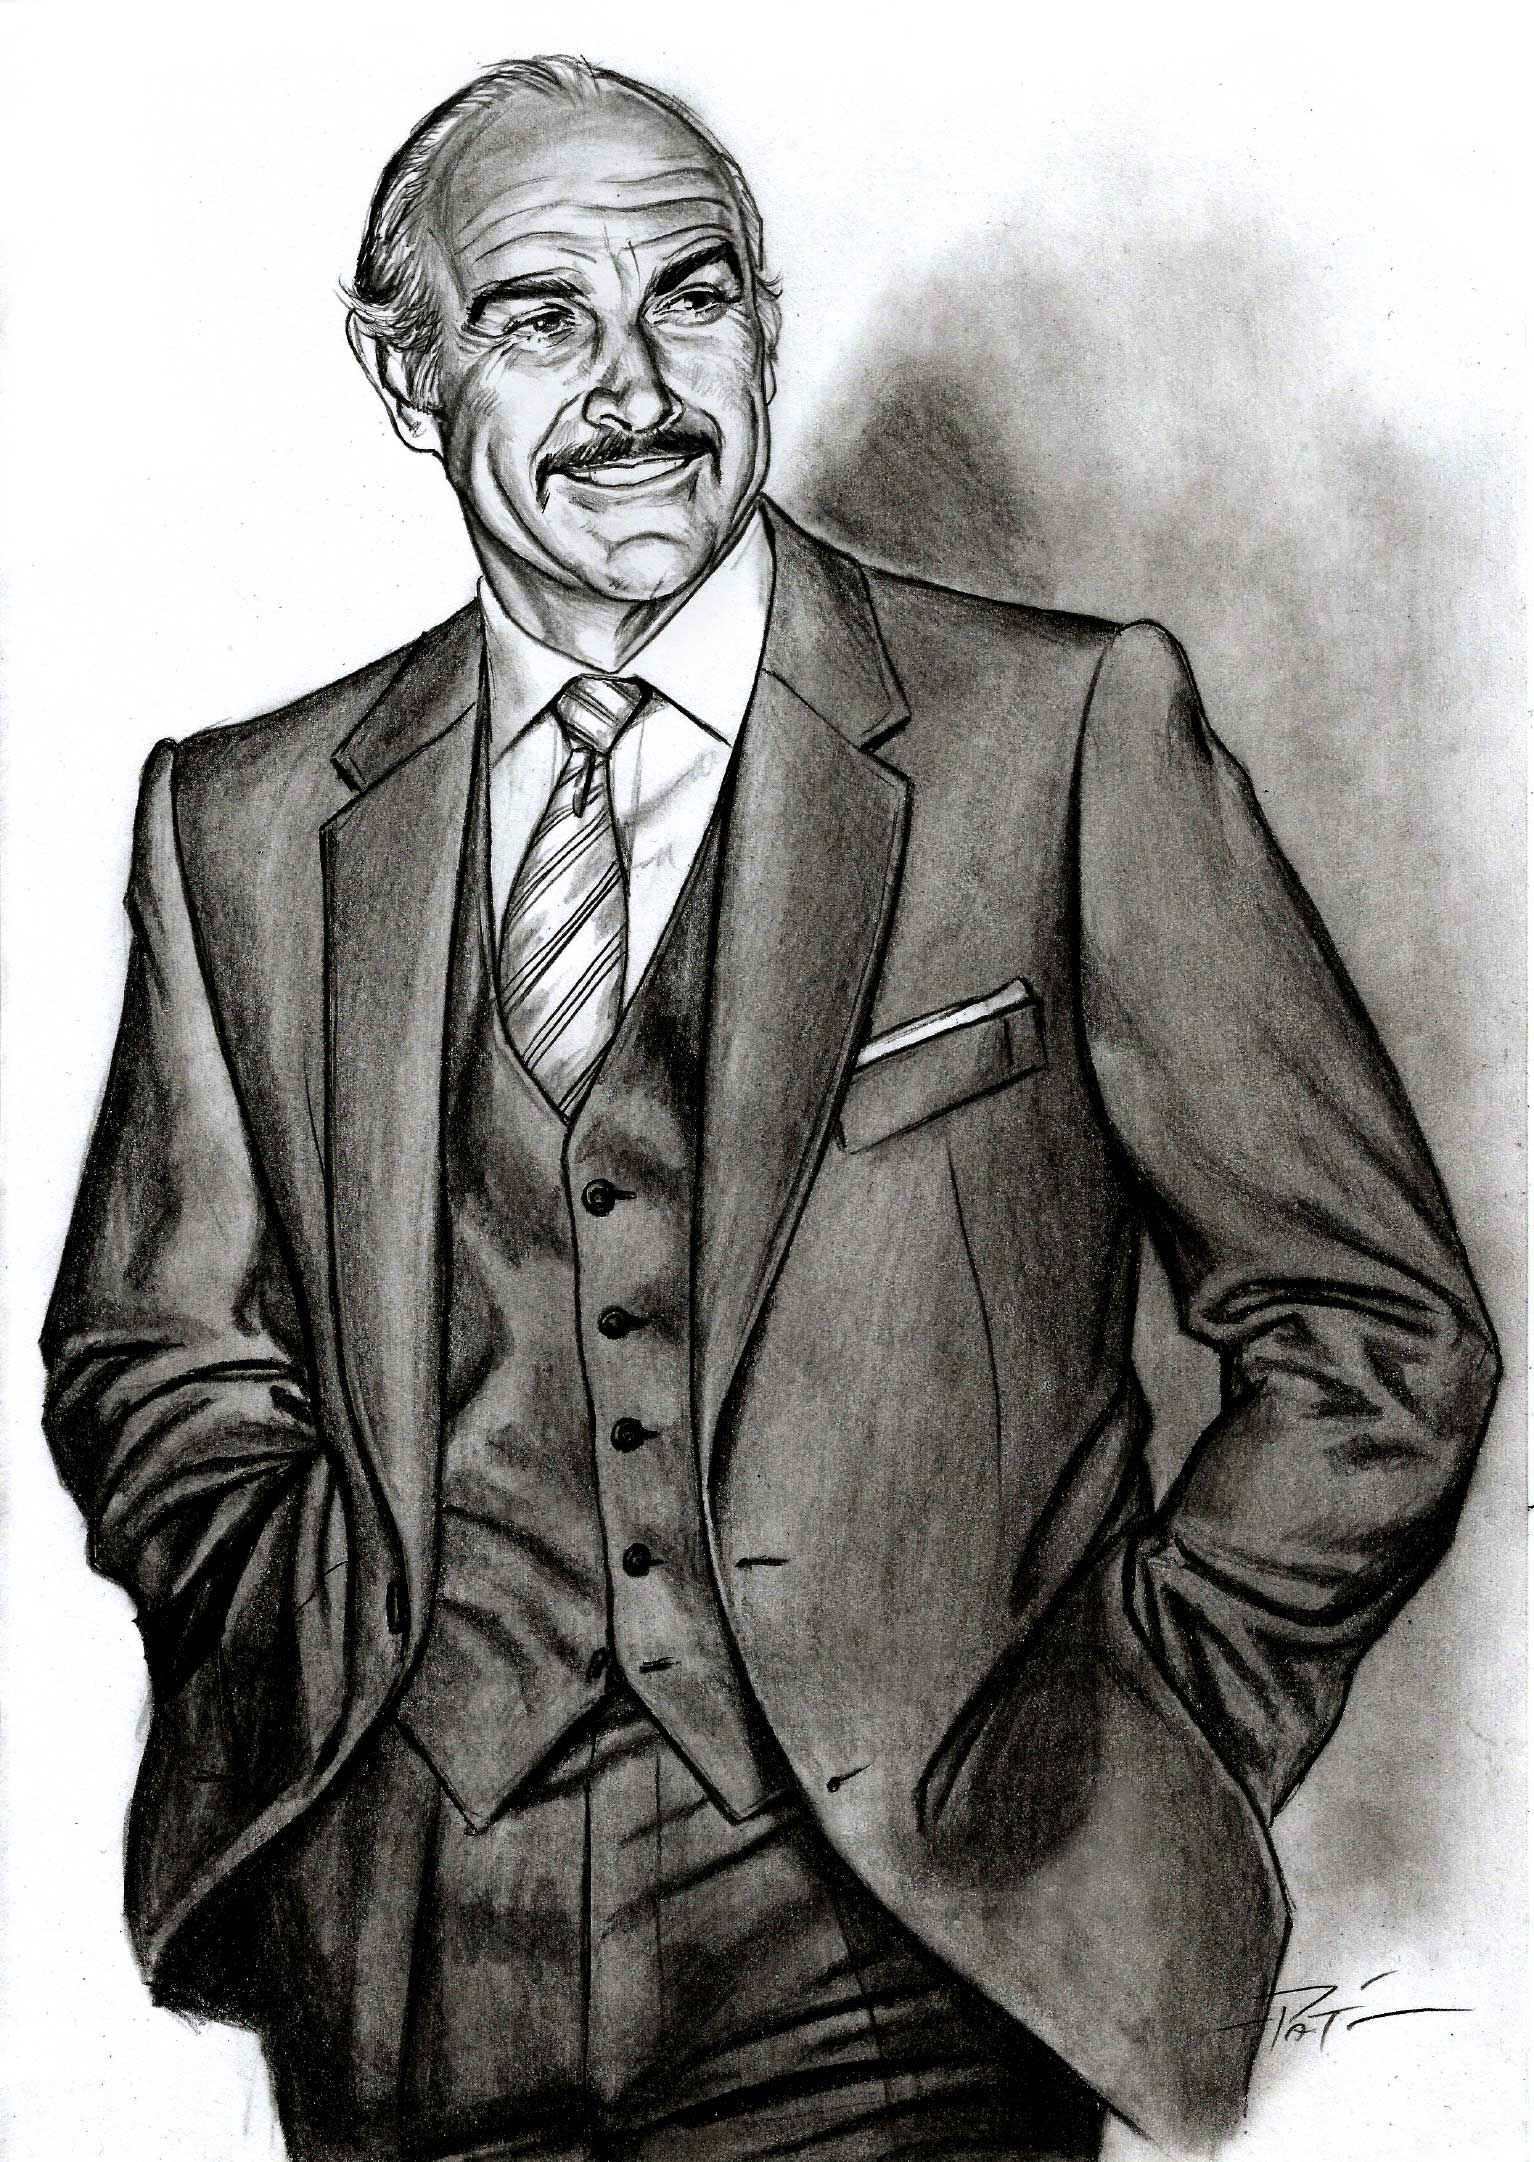 sean connery pencil sketch